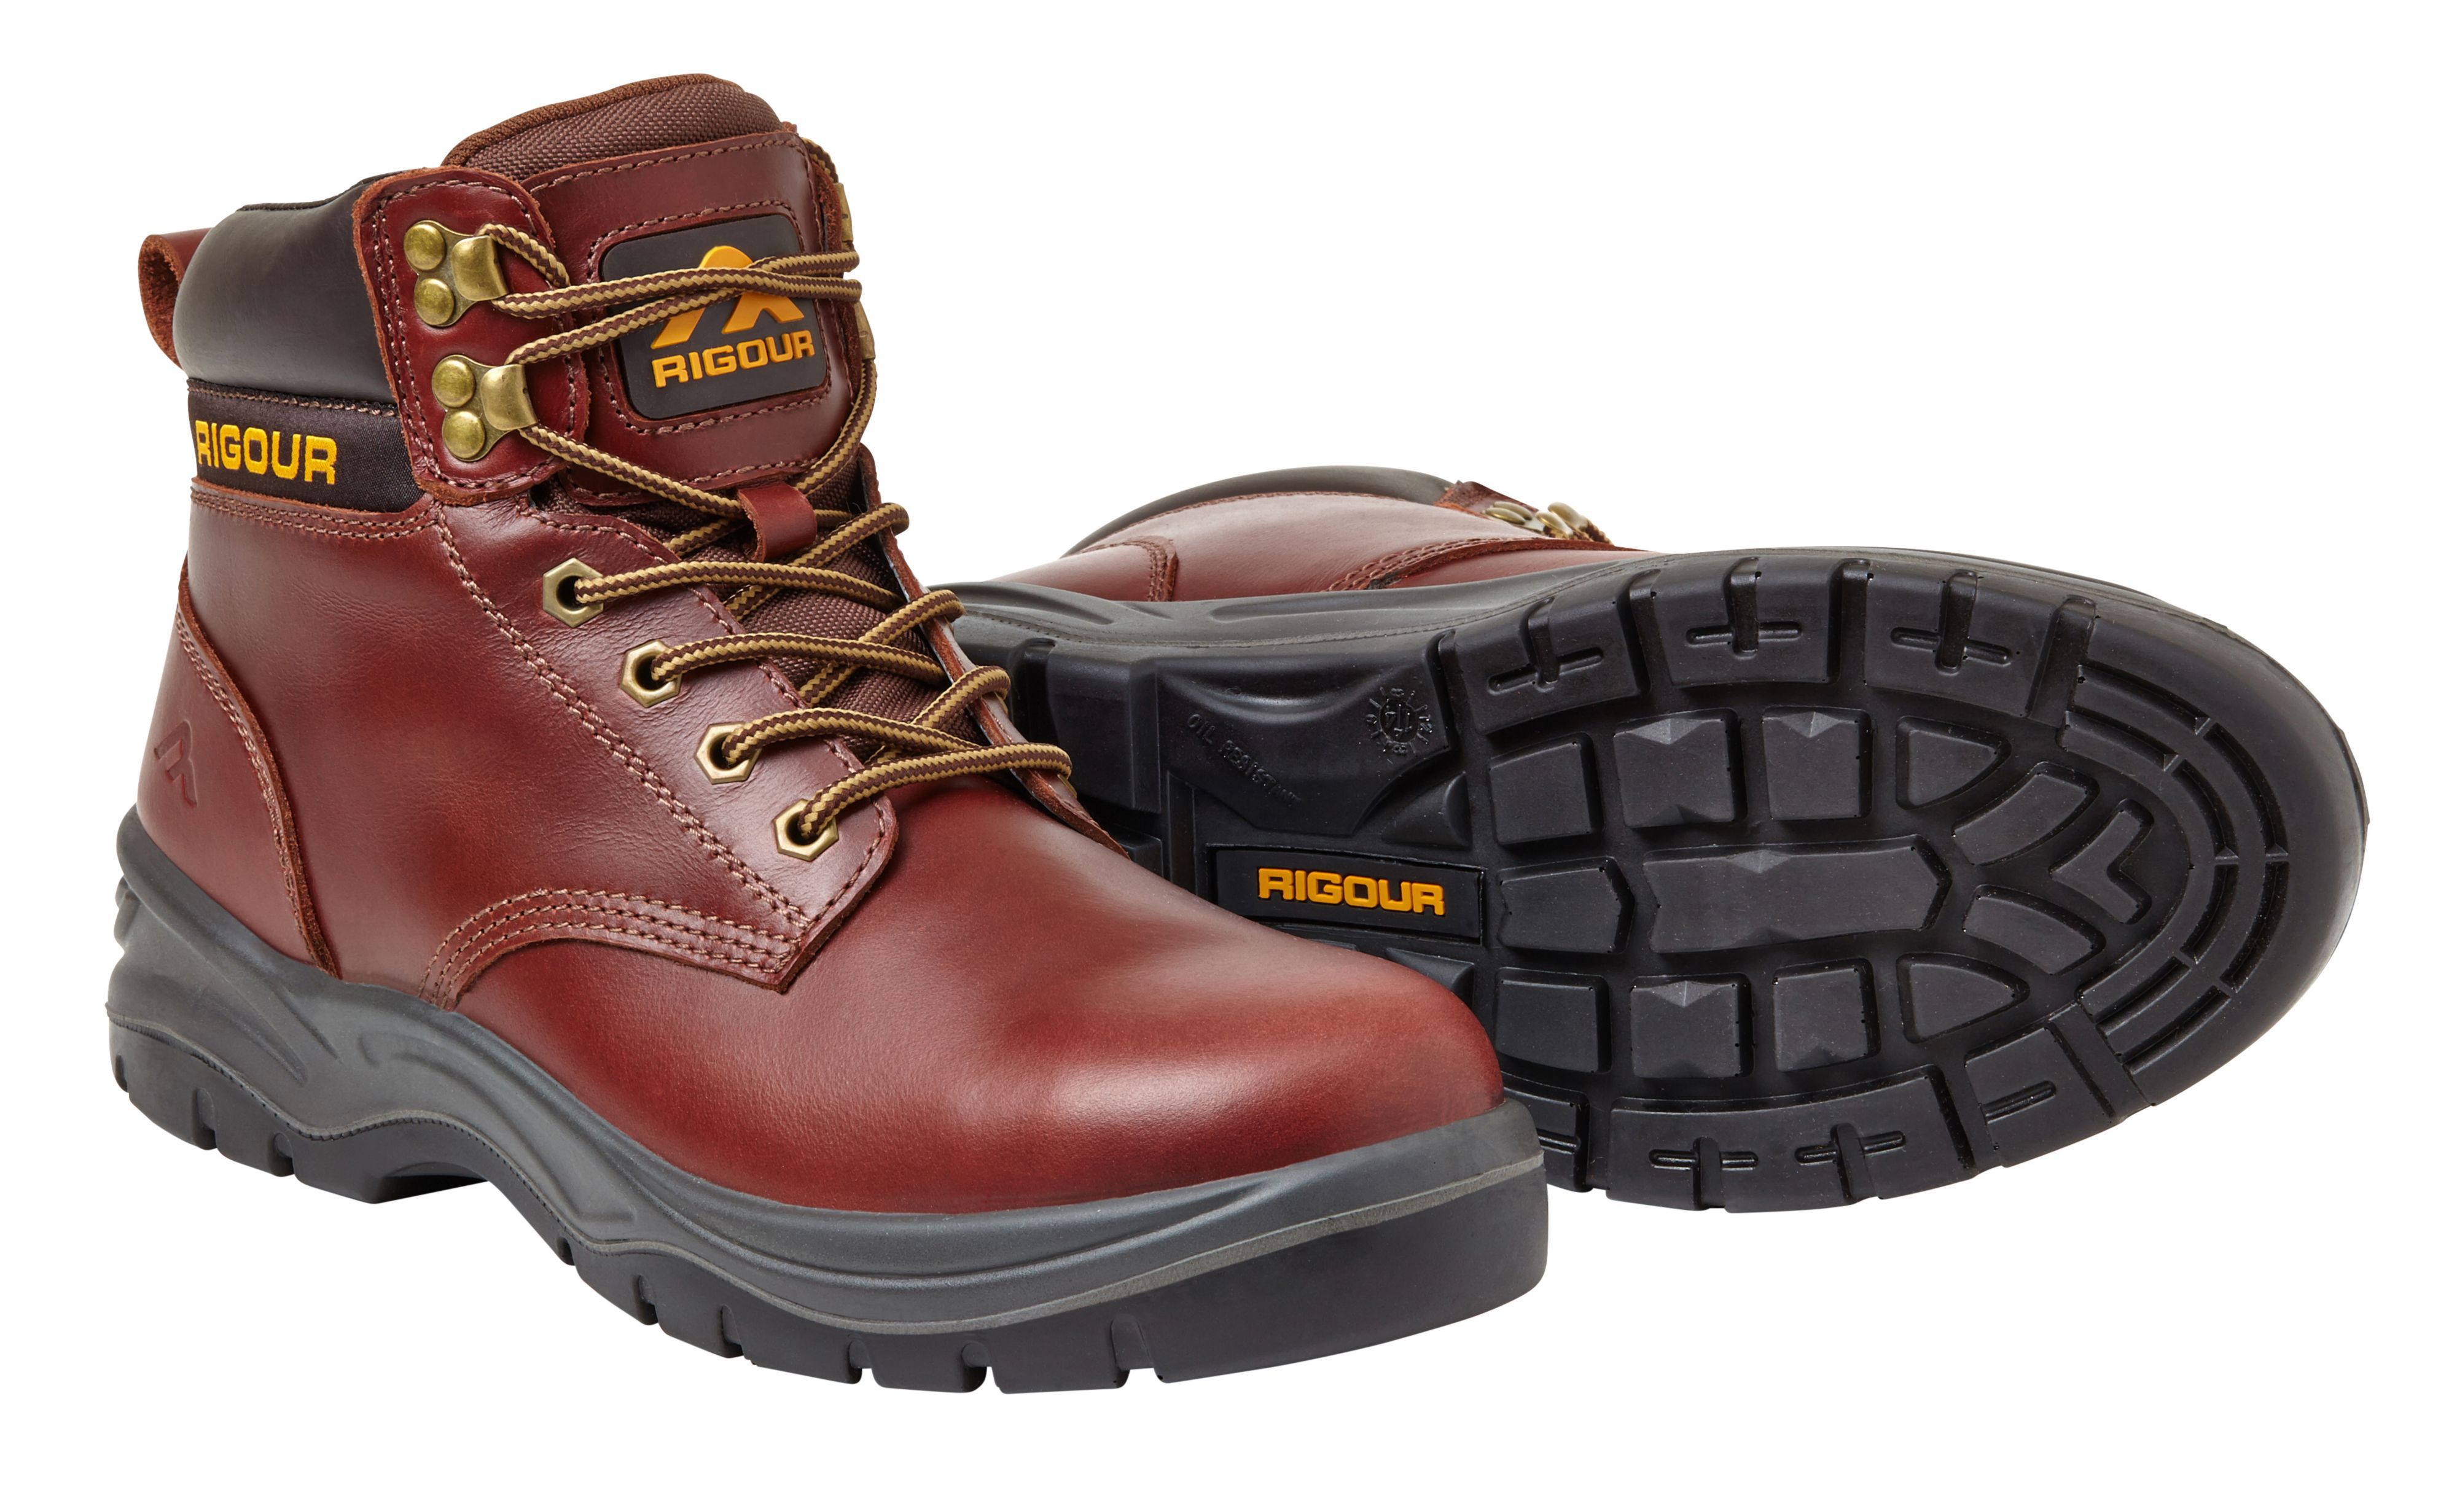 Rigour Galactic Tan Safety Work Boots, Size 8